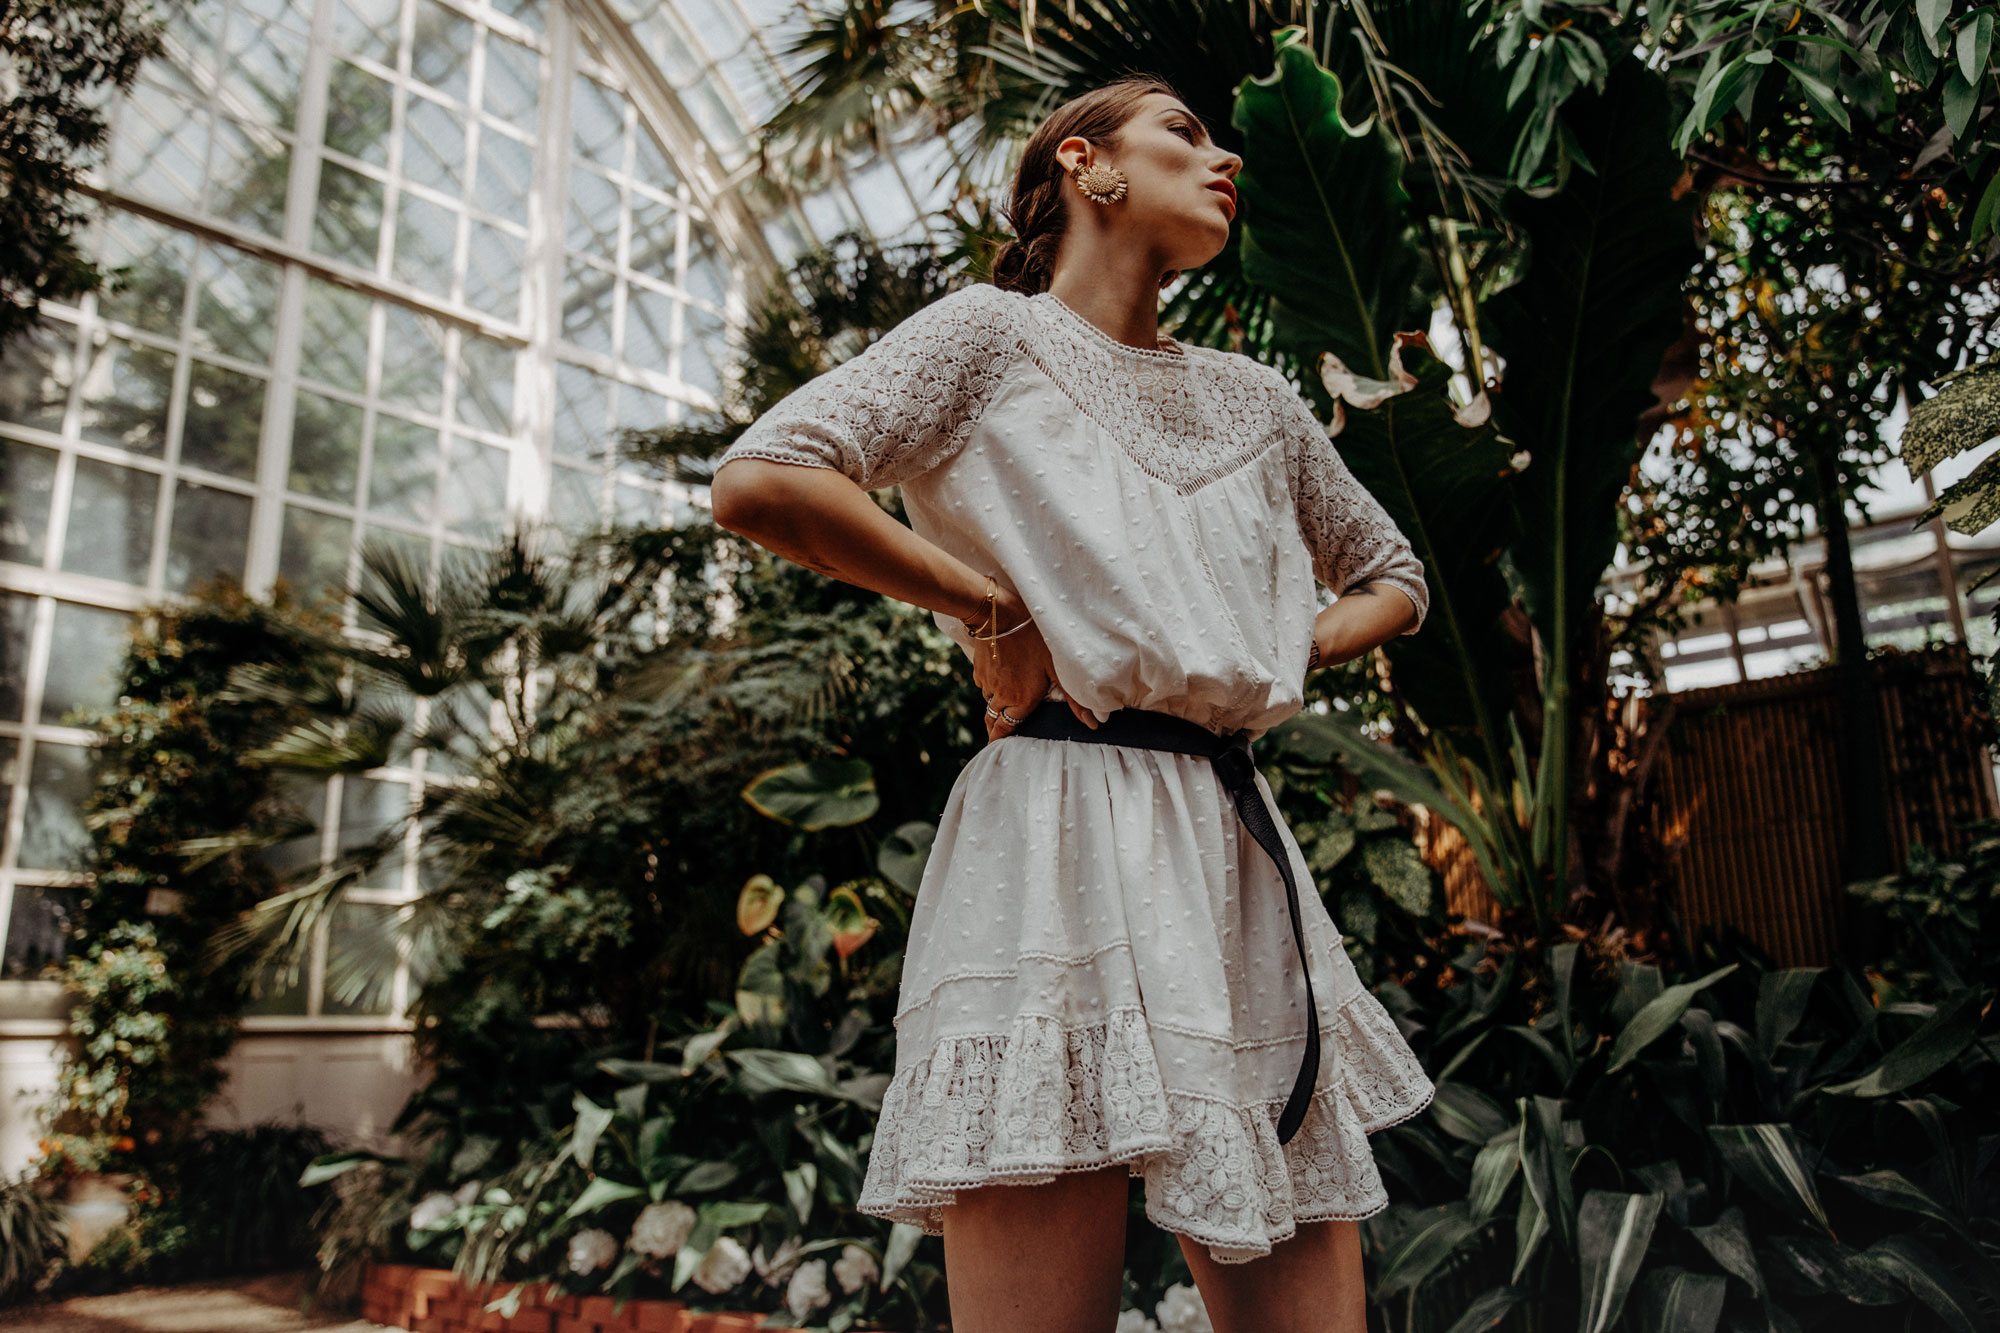 Greenery | Happy | Botanical Garden | Fashion | Style | Blogger | Masha Sedgwick | floral | summer | spring | dress | outfit | look | inspiration | editorial photography | Vienna | Austria | Palm house | dress